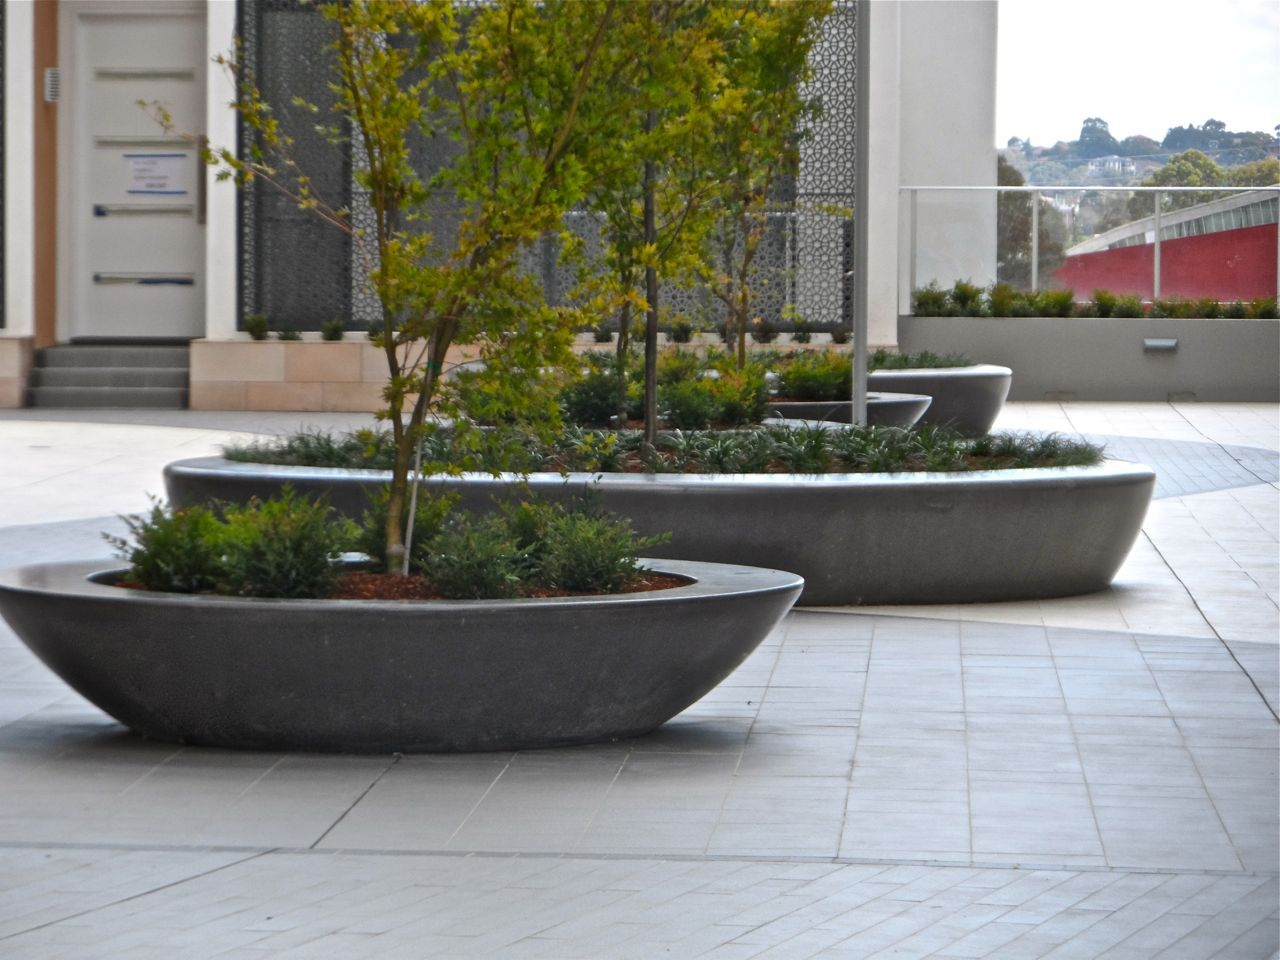 planter boxes for trees Google Search